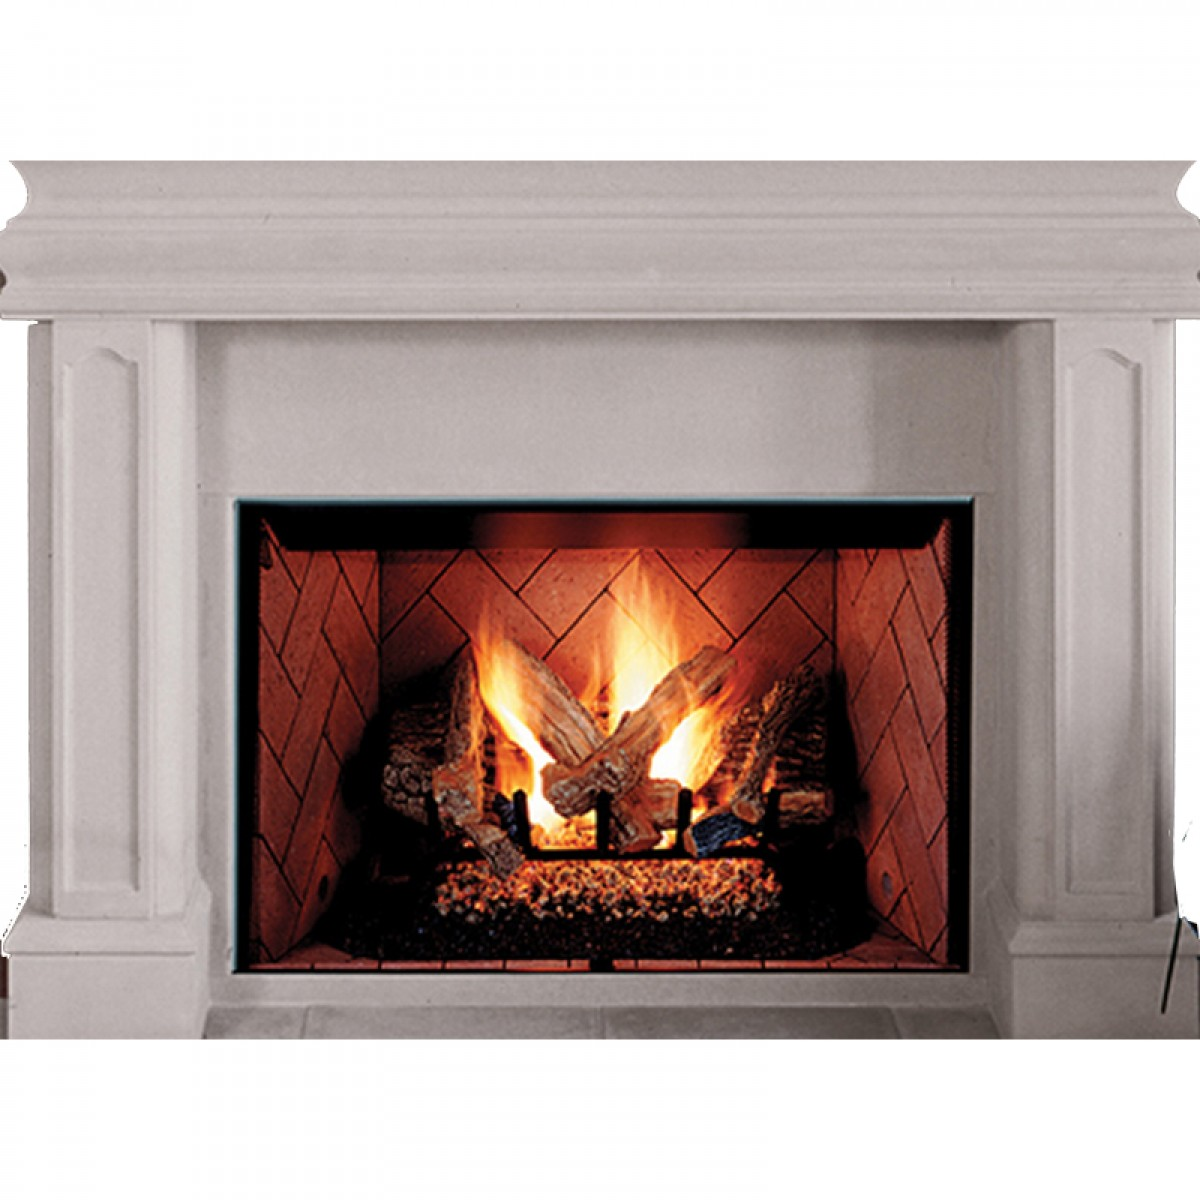 Ihp Superior Brt4542ten B 42 Quot Ng Fireplace W White Hrgbn Pnls